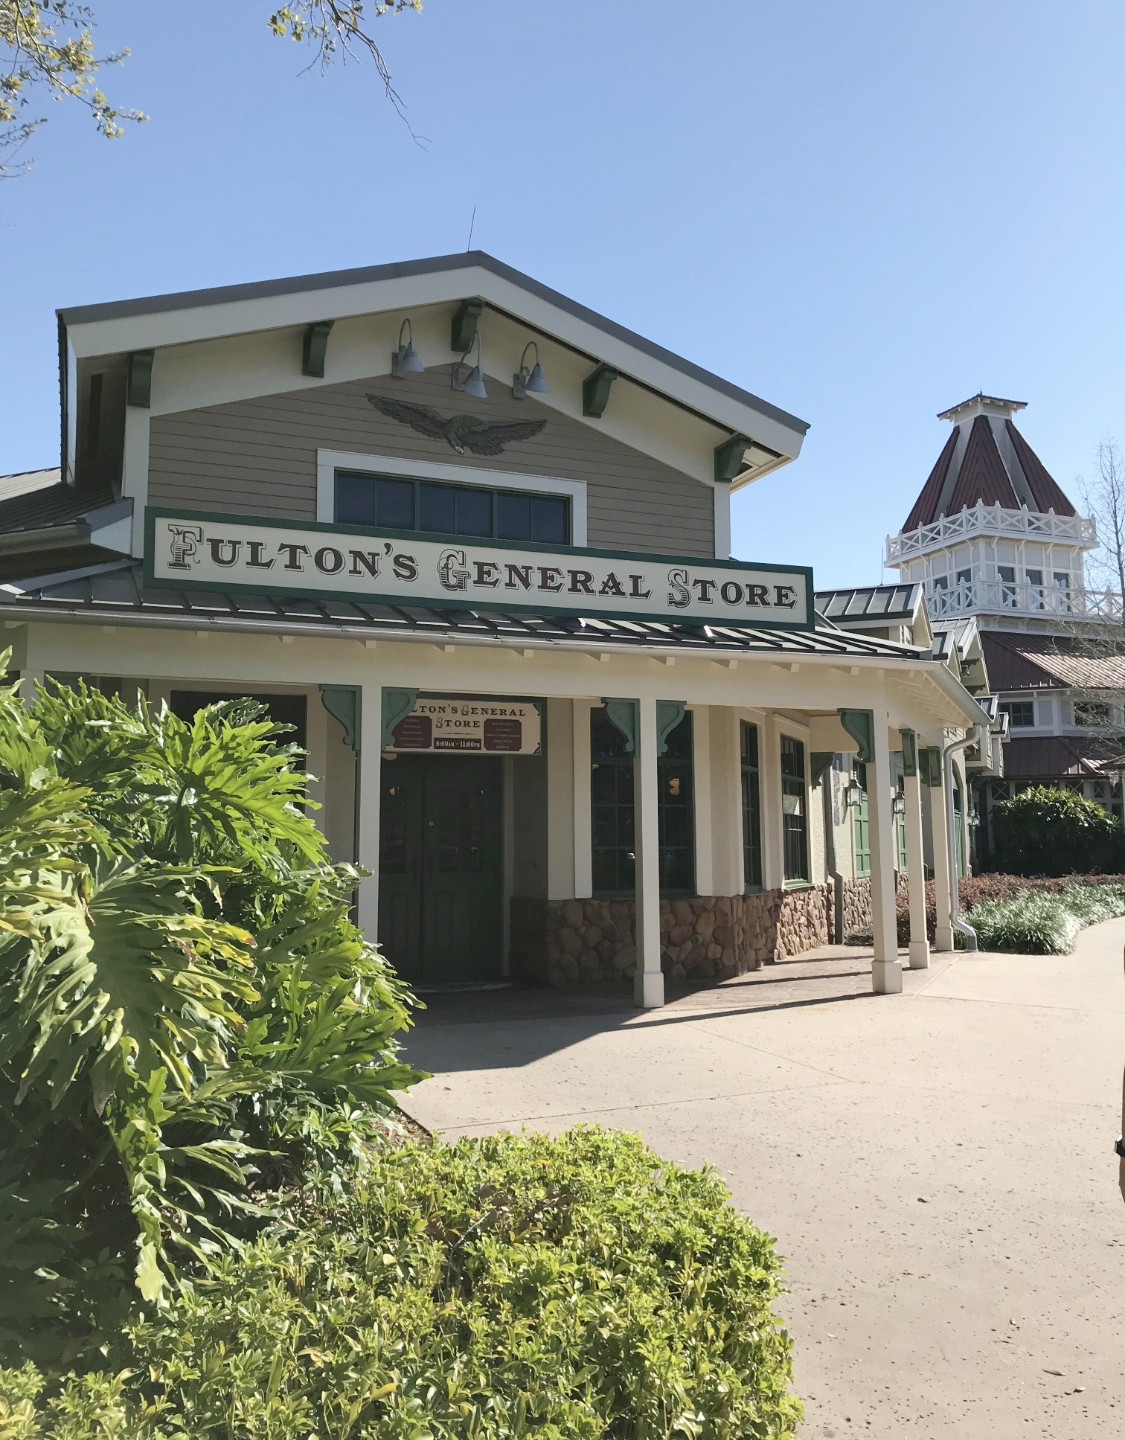 Fulton's General Store - Gift Shop